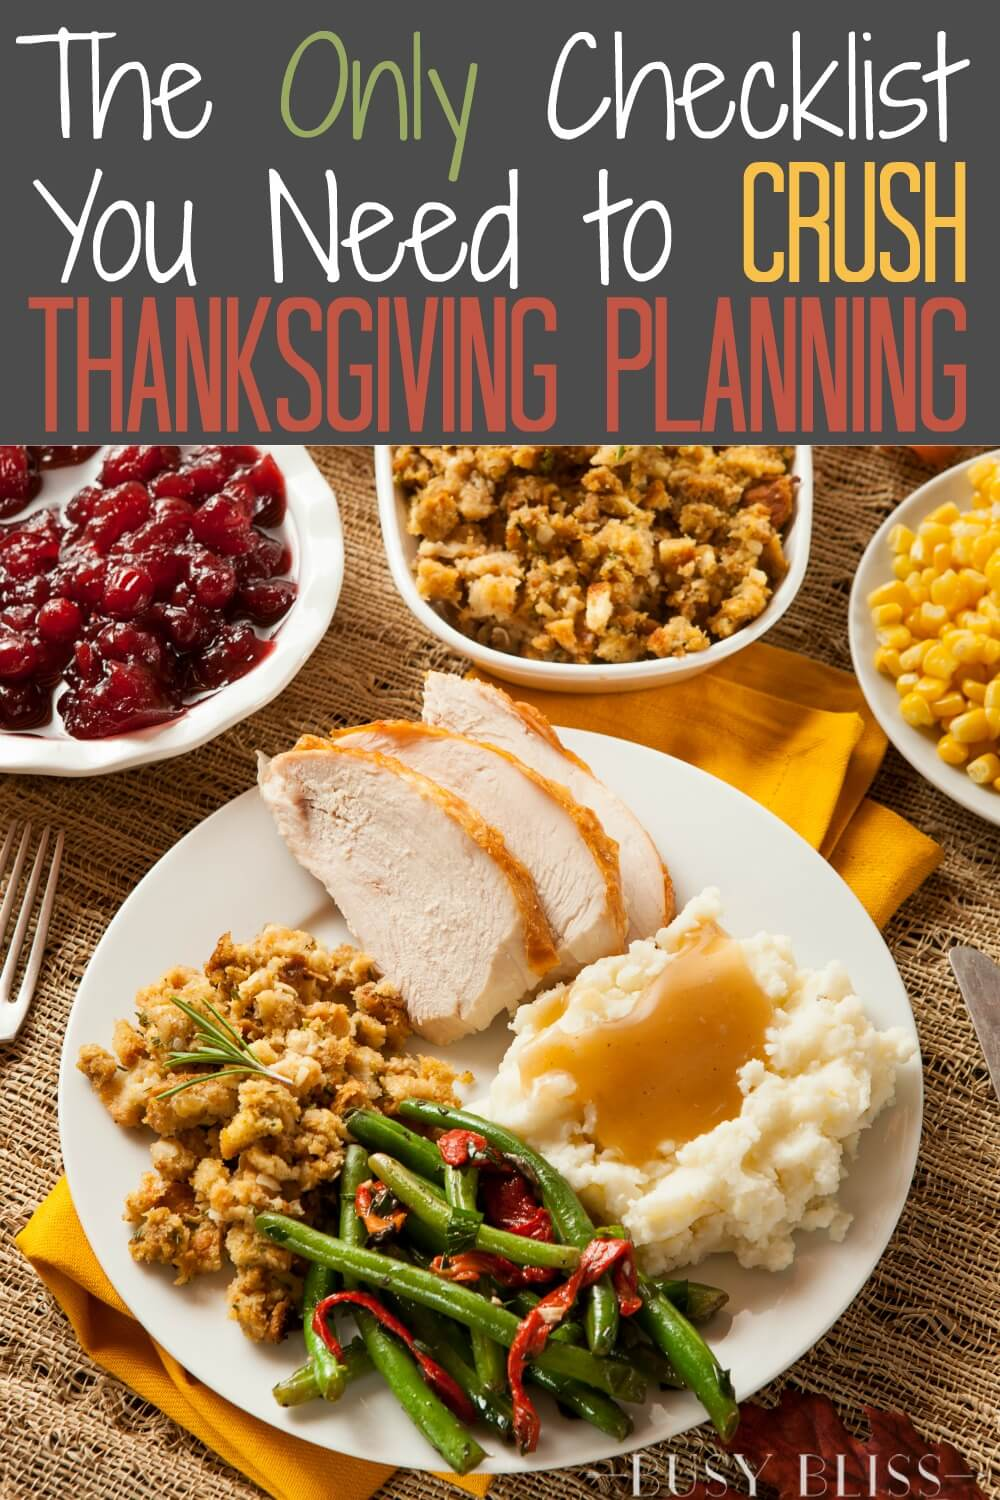 The Thanksgiving countdown is on! Grab your Thanksgiving planner checklist and plan ahead with tips and a timeline to crush your Thanksgiving planning.